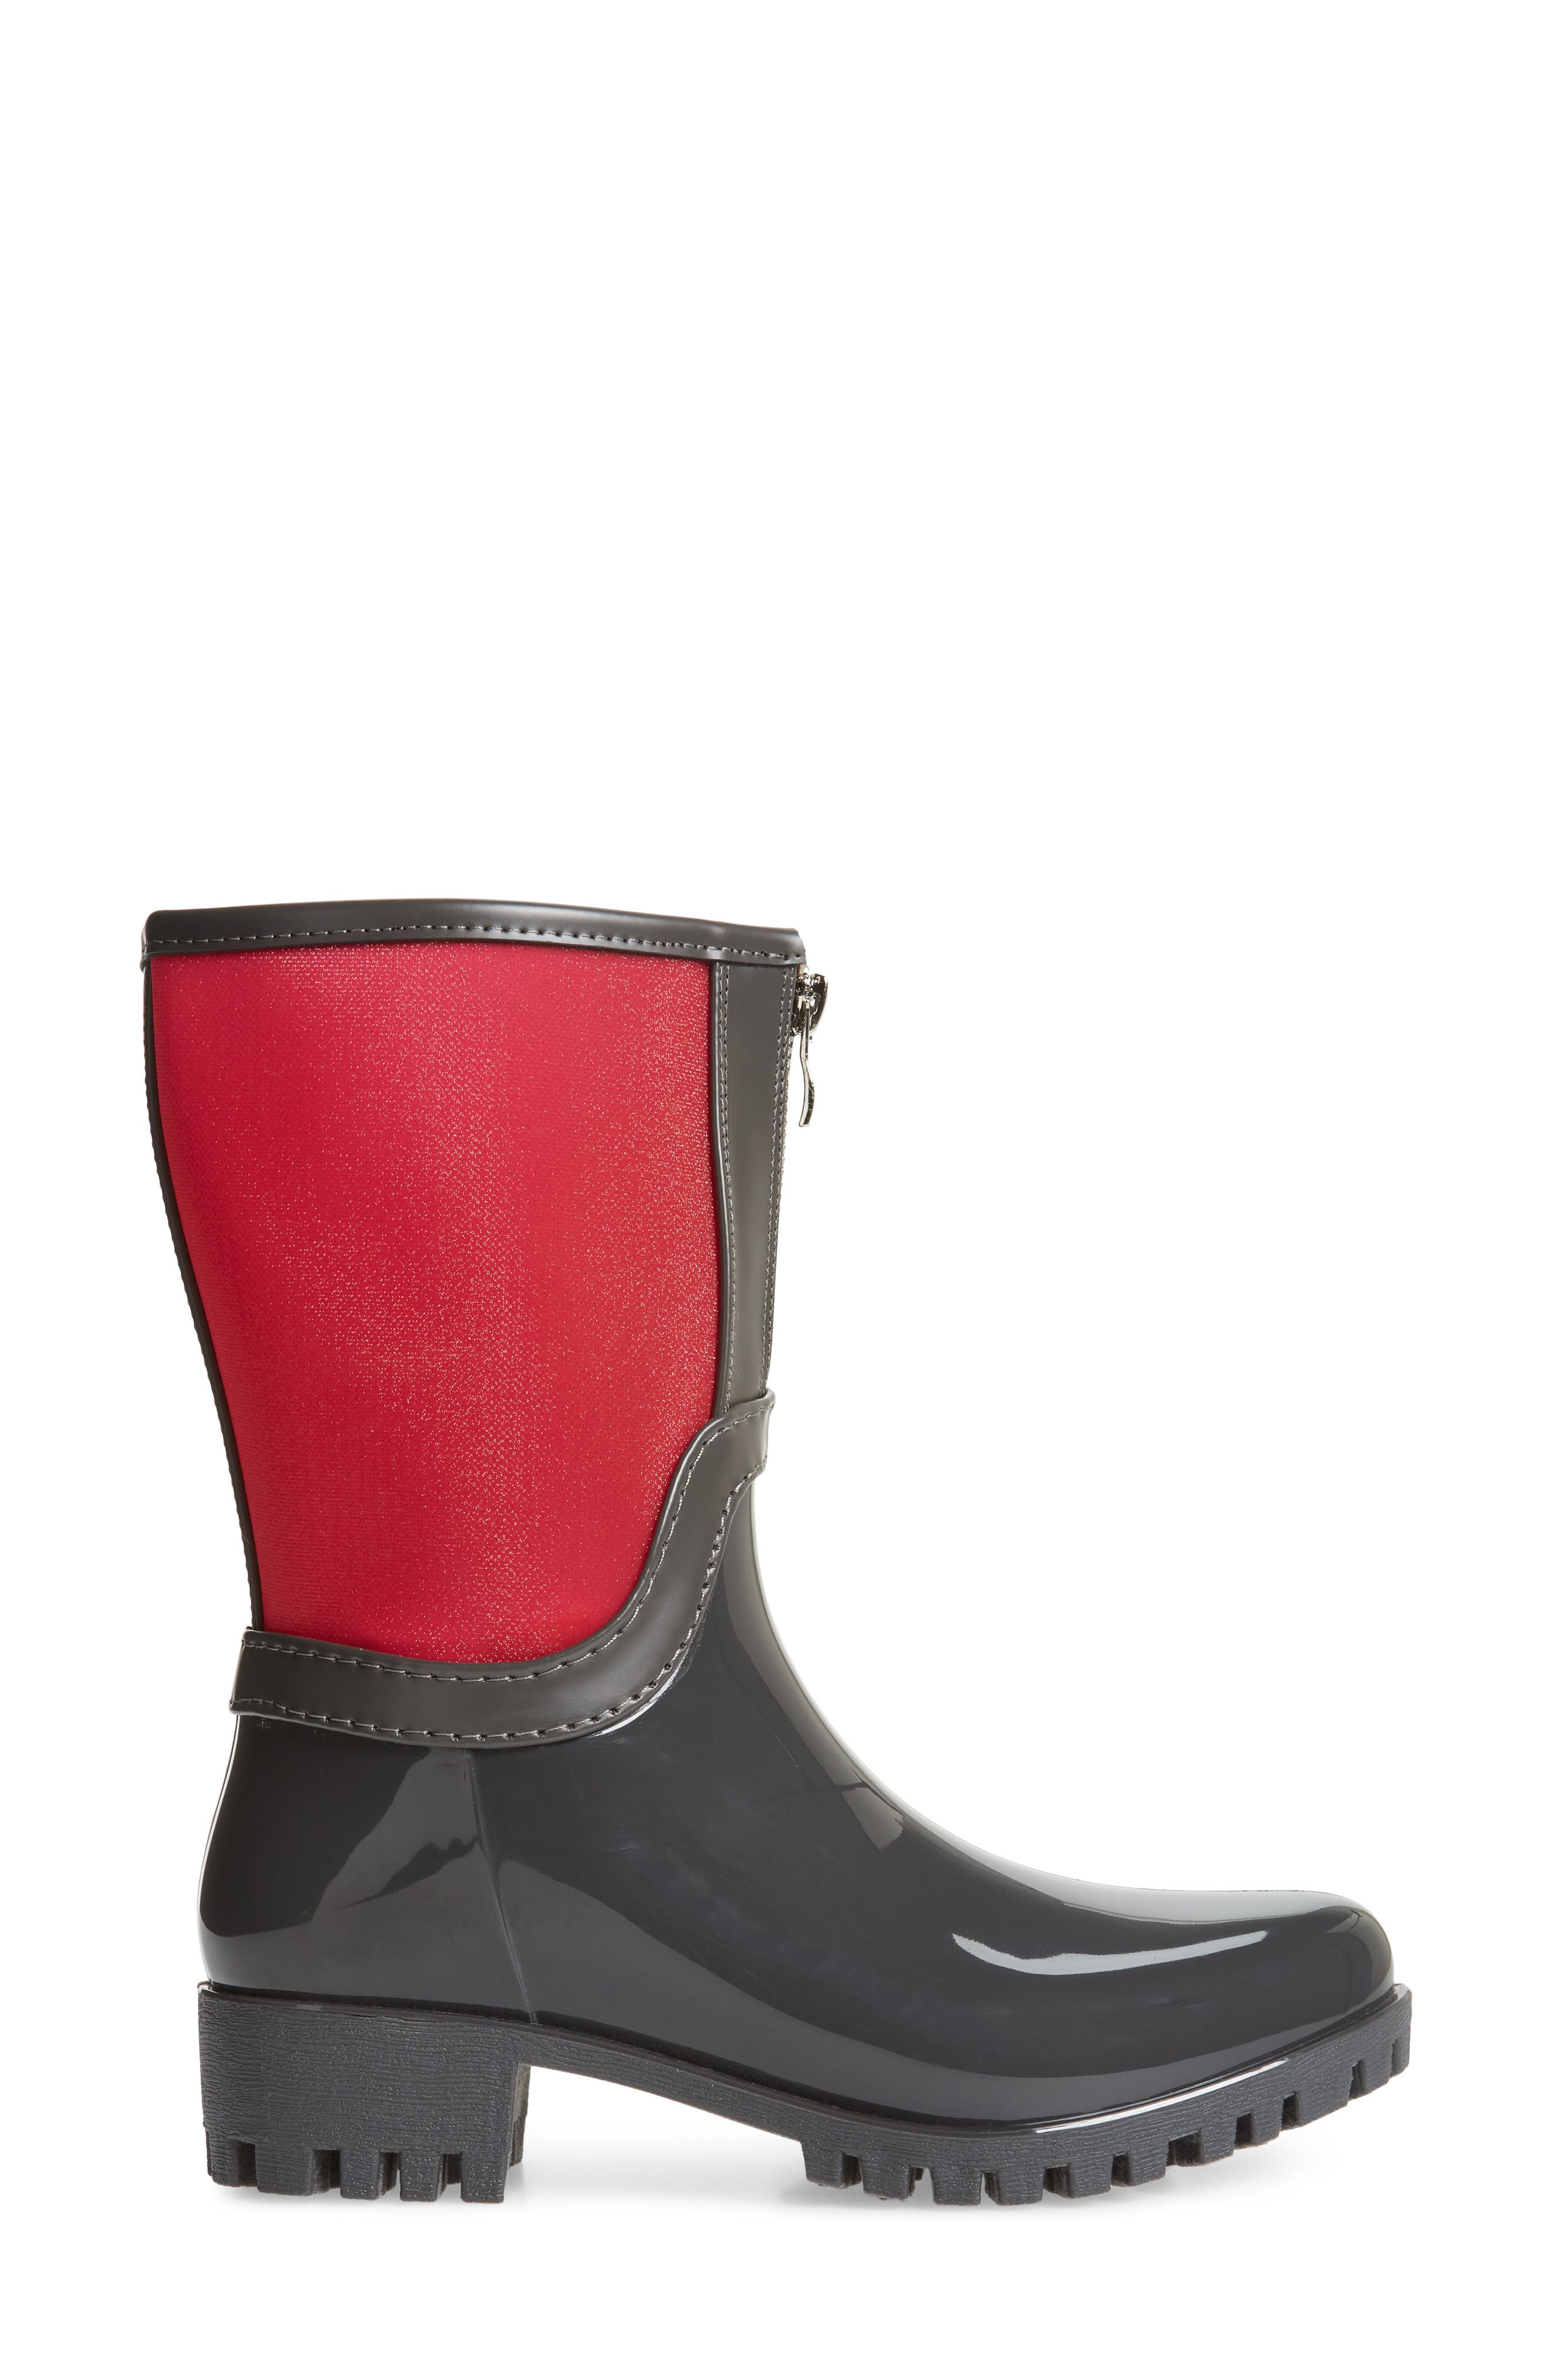 Dryden Sheer Waterproof Boot,                             Alternate thumbnail 3, color,                             Berry Fabric